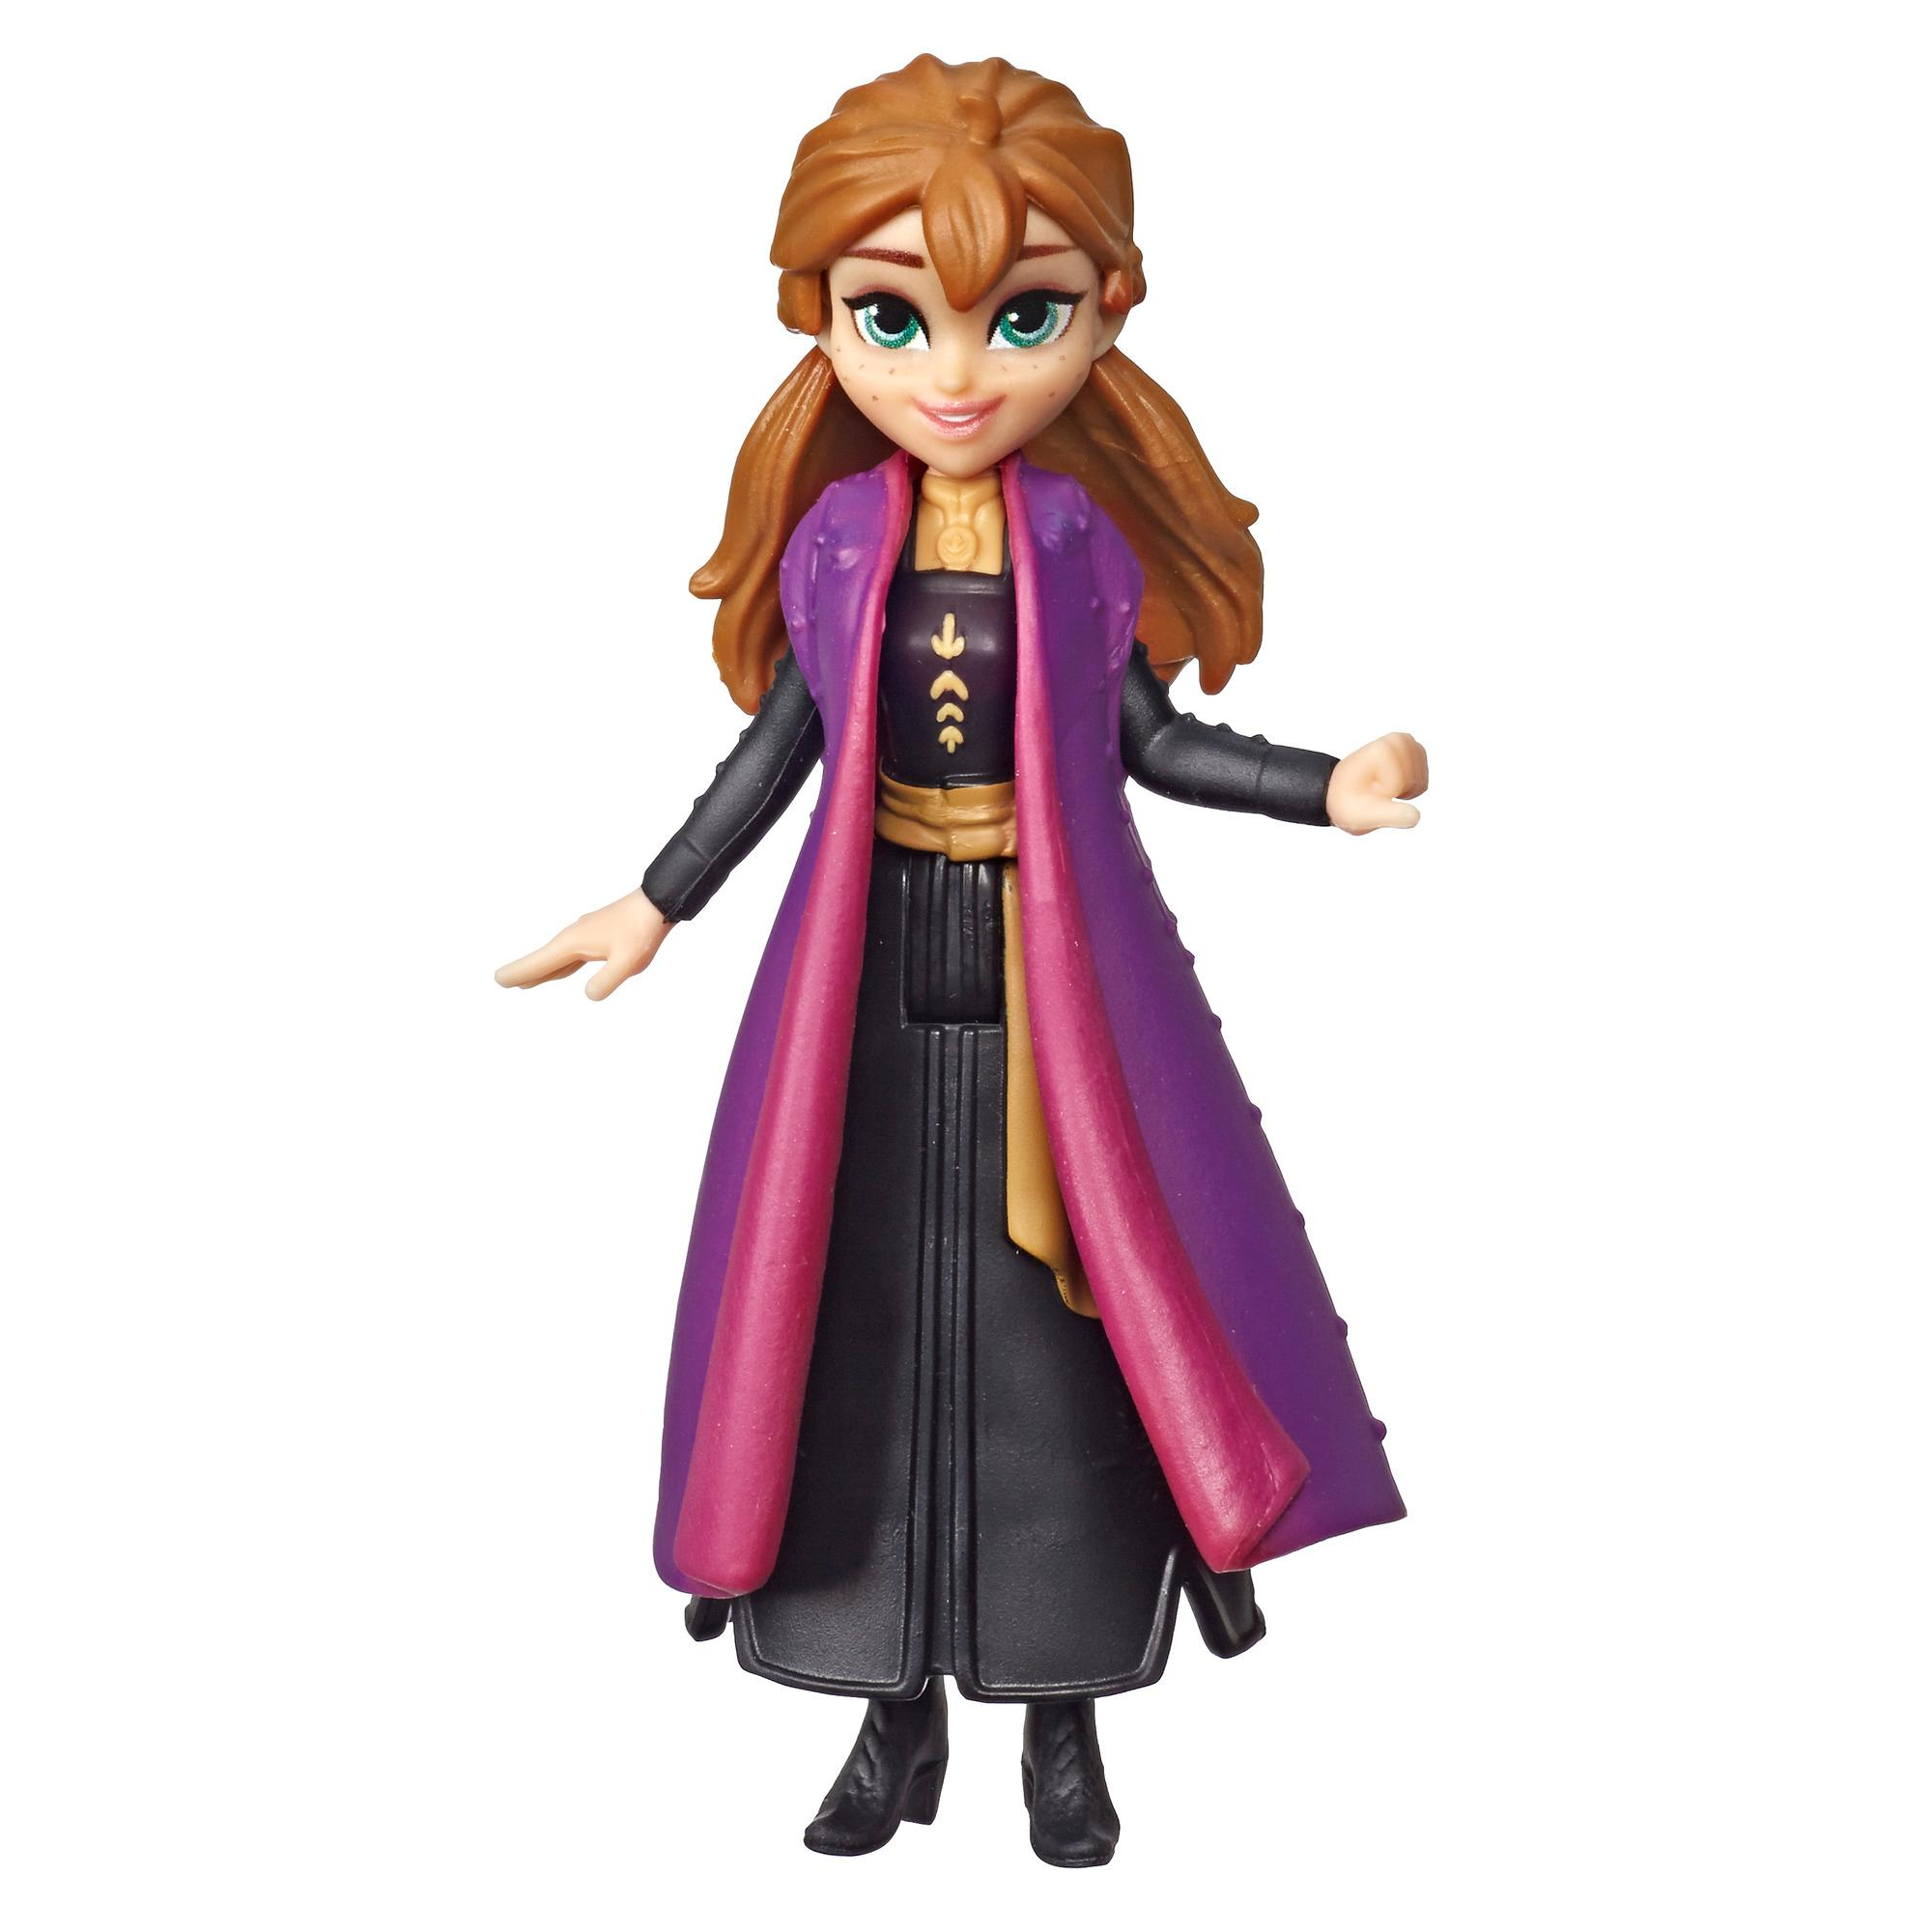 Disney Frozen Anna Small Doll With Removable Cape Inspired by Frozen 2